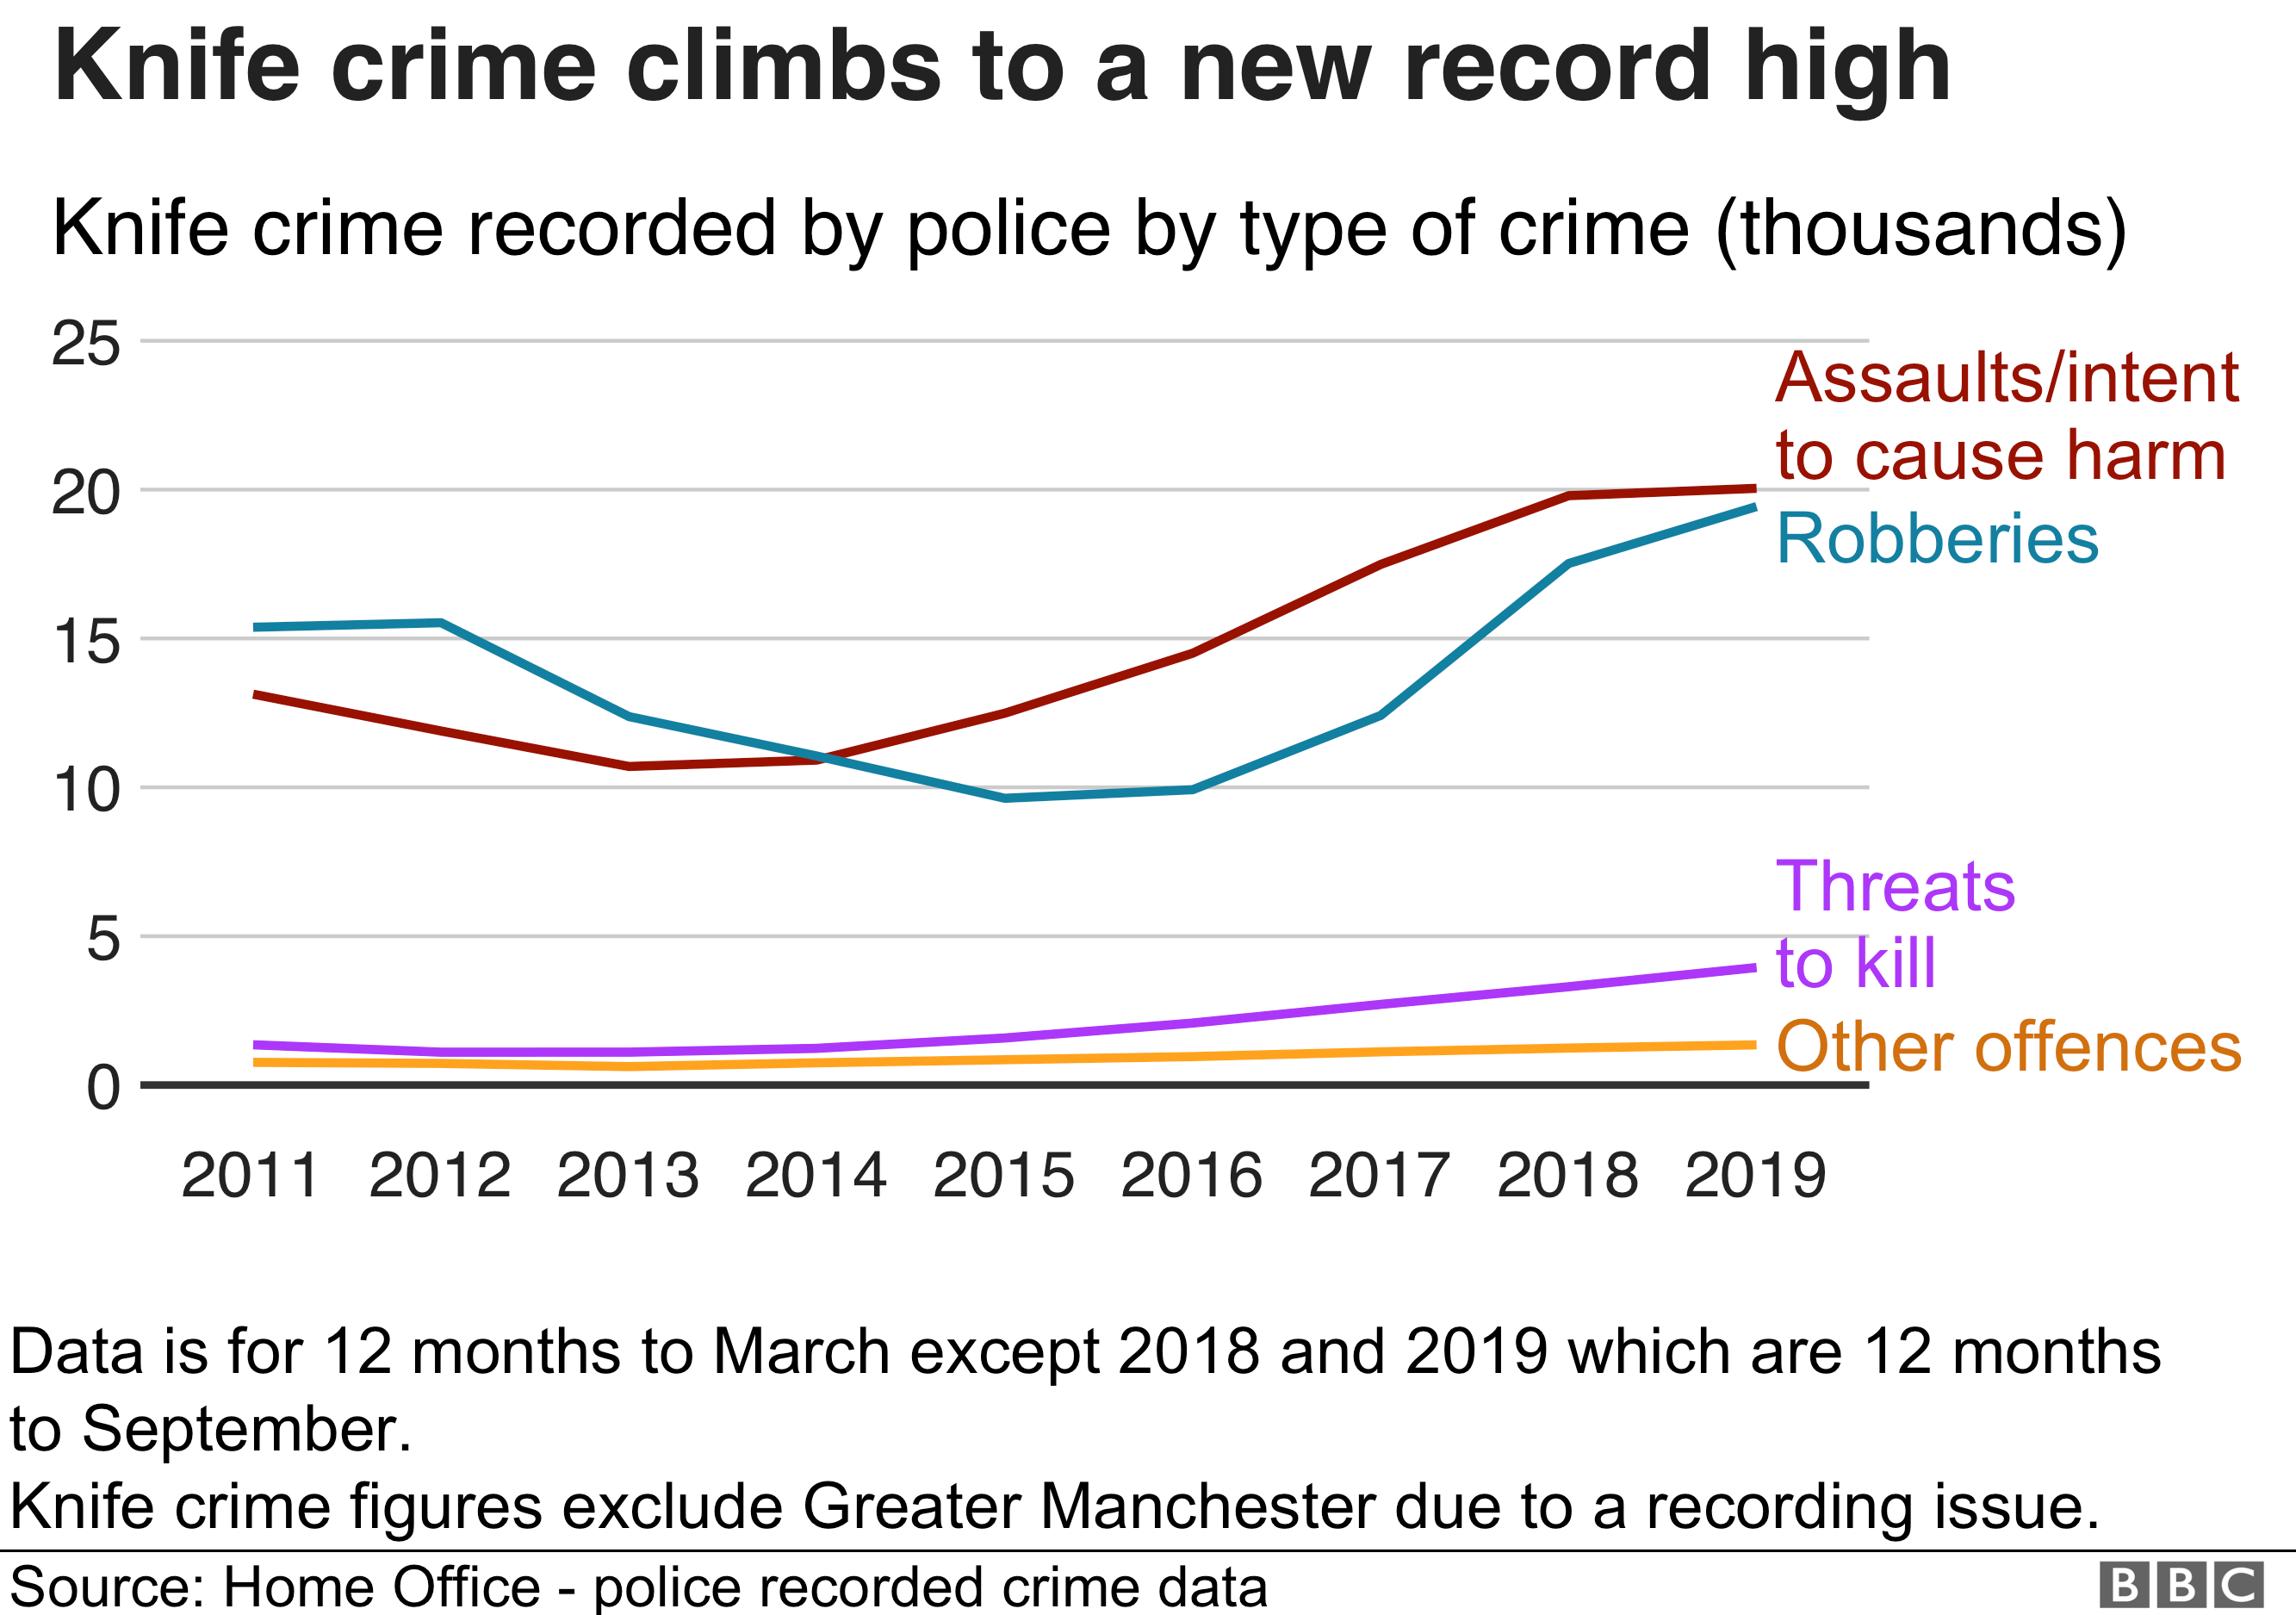 https://ichef.bbci.co.uk/news/624/cpsprodpb/18237/production/_110617889_optimised-knife_crime_chart-nc.png